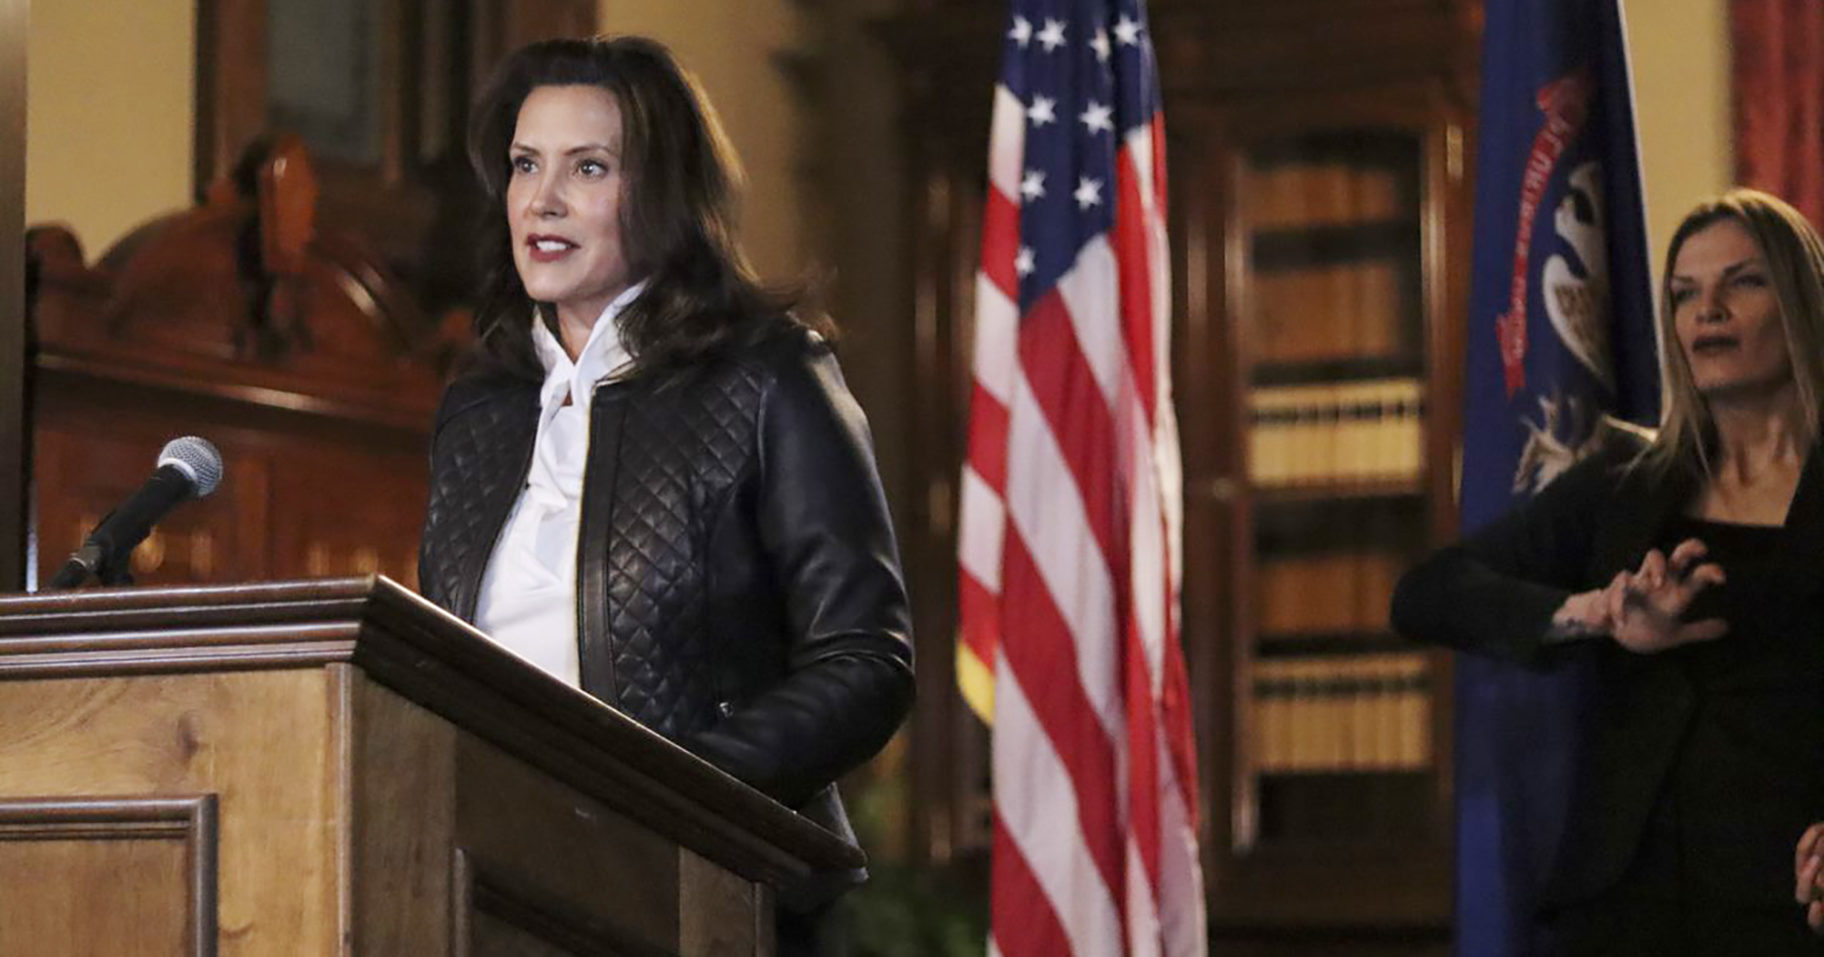 In a photo provided by the Michigan Office of the Governor, Michigan Gov. Gretchen Whitmer addresses the state during a speech in Lansing, Michigan, on Oct. 8, 2020.